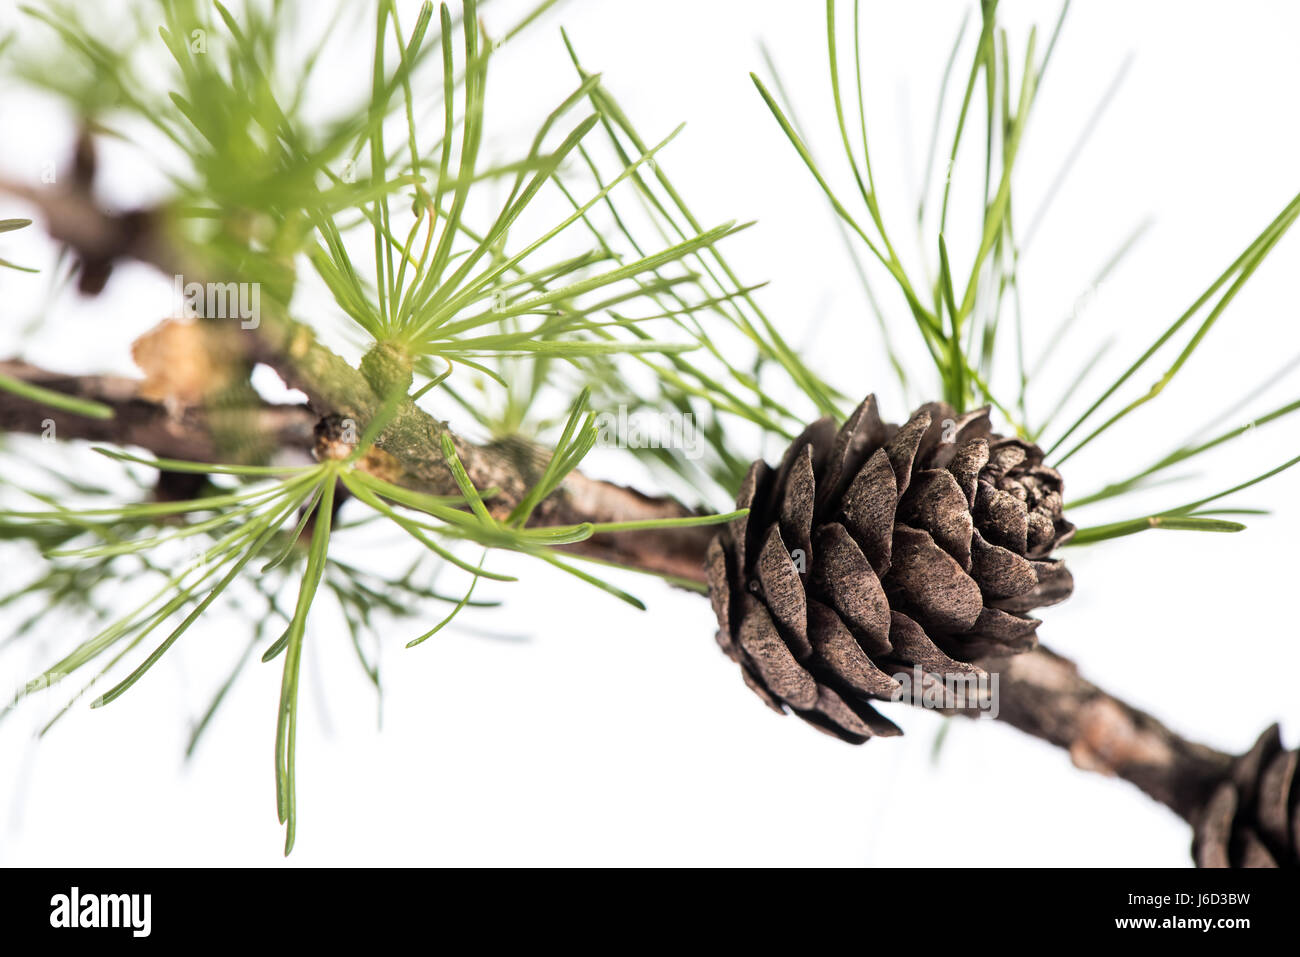 Closeup of a larch tree branch with larch cones, isolated on white background. Pine cones on branch of conifer tree. - Stock Image